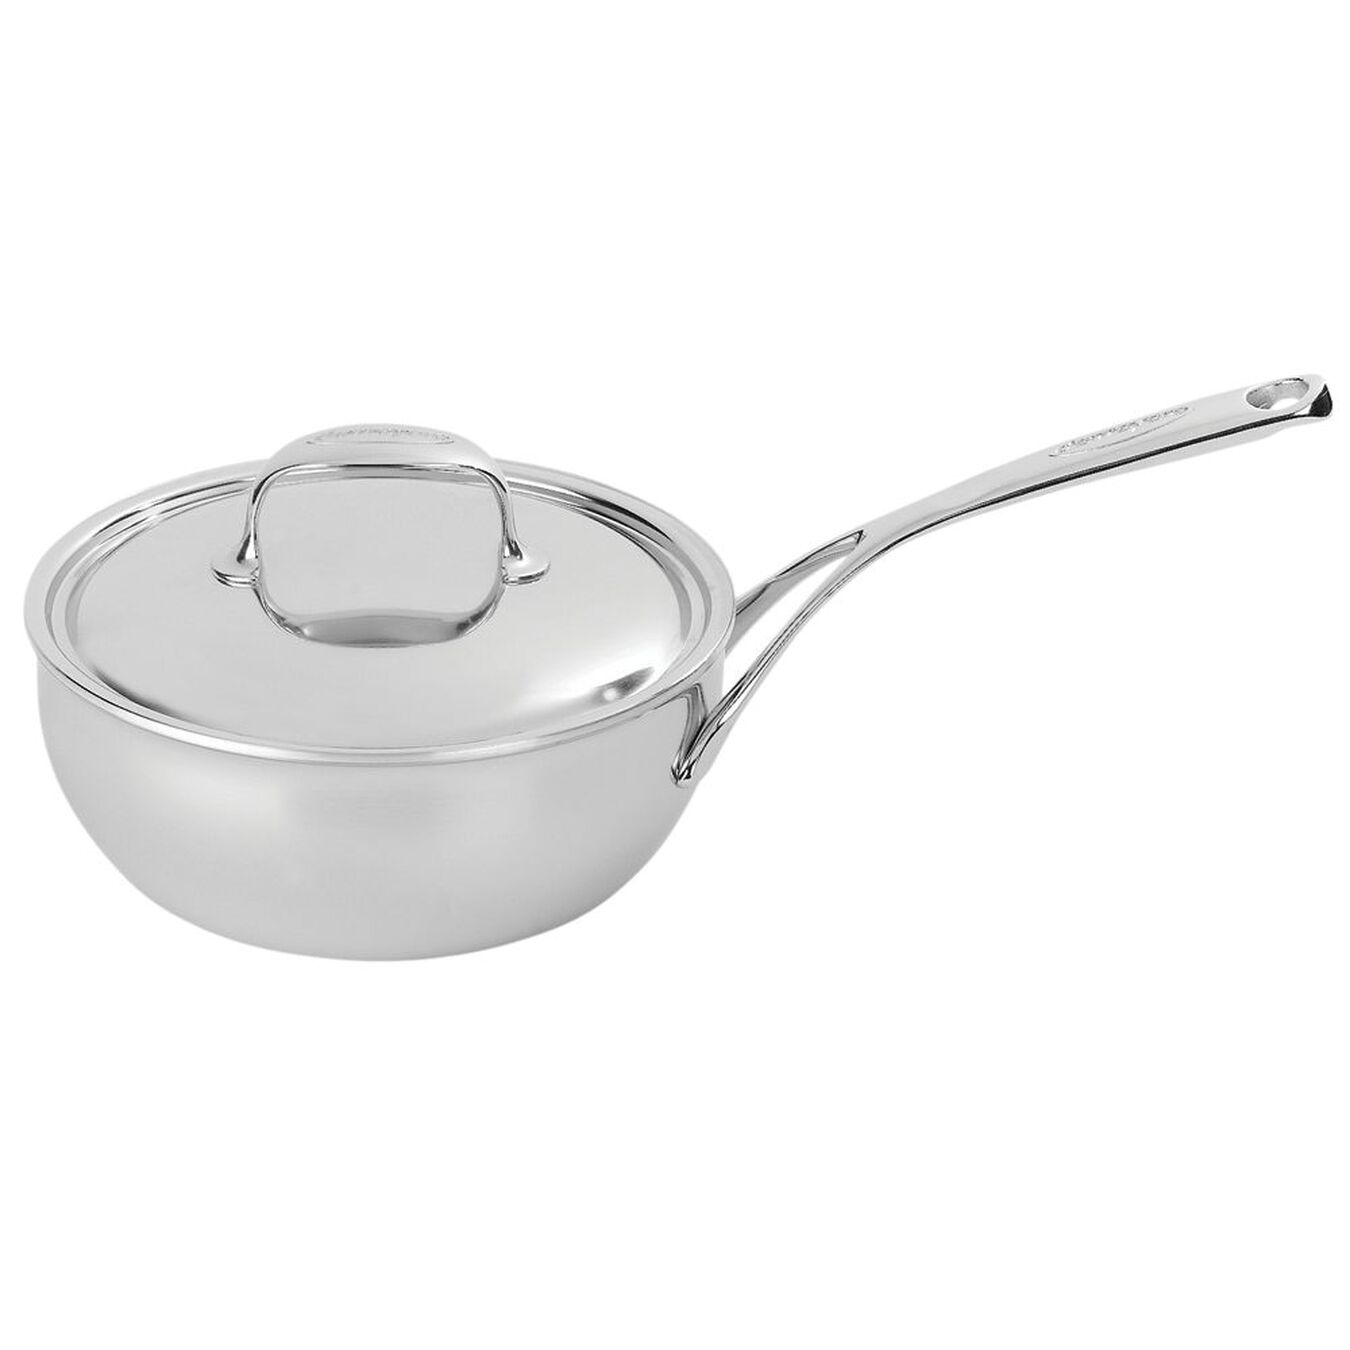 2.25 qt Sauteuse conical, 18/10 Stainless Steel ,,large 1